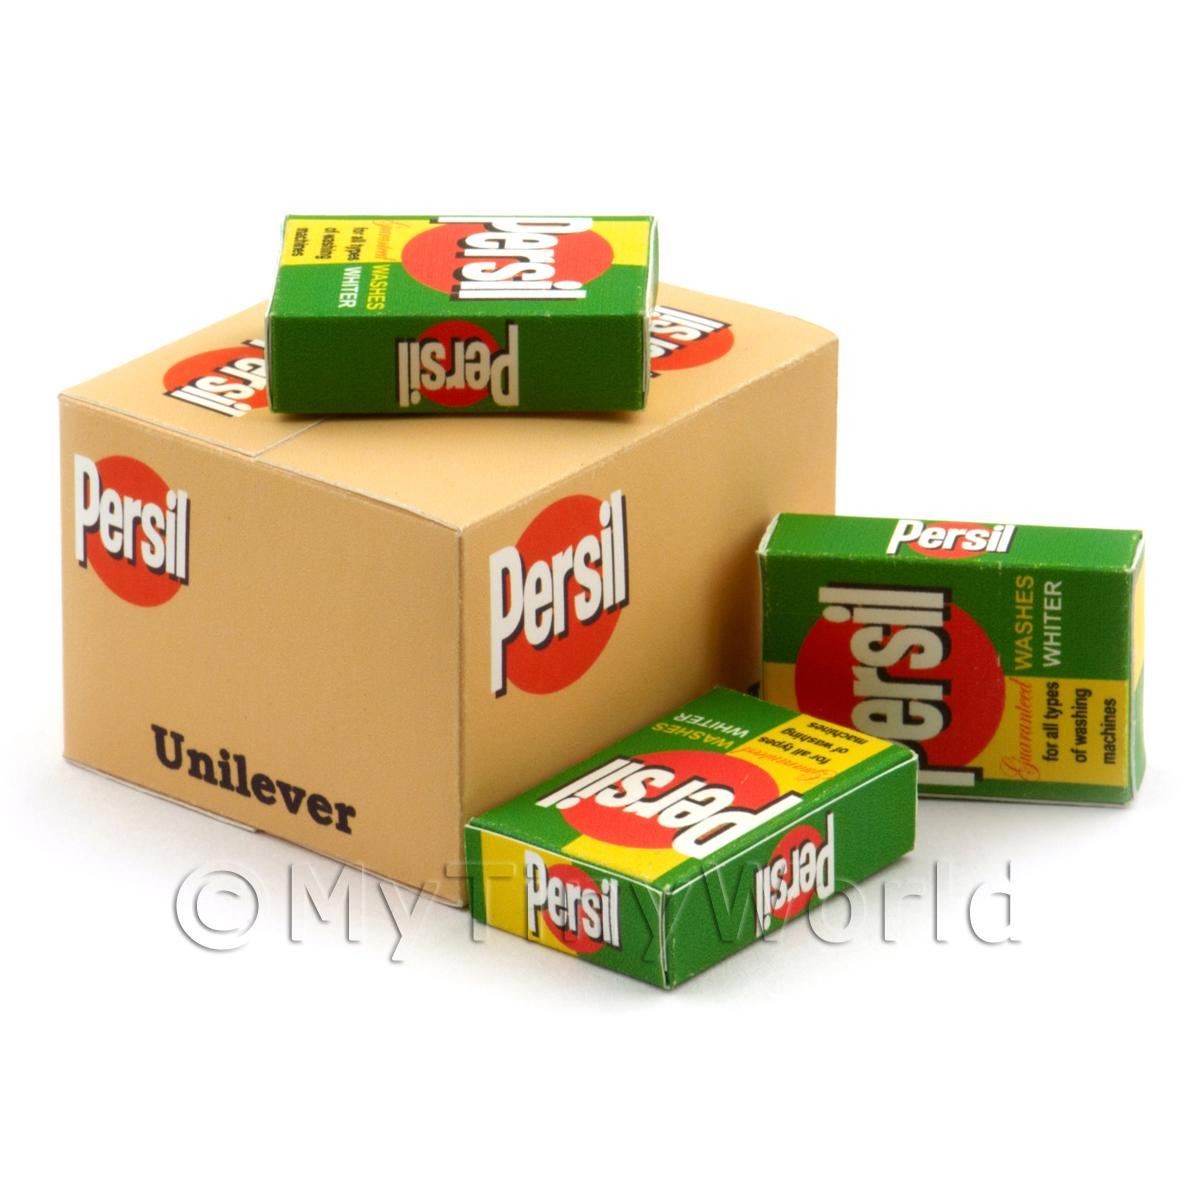 Dolls House Miniature Persil Shop Stock Box And 3 Loose Boxes